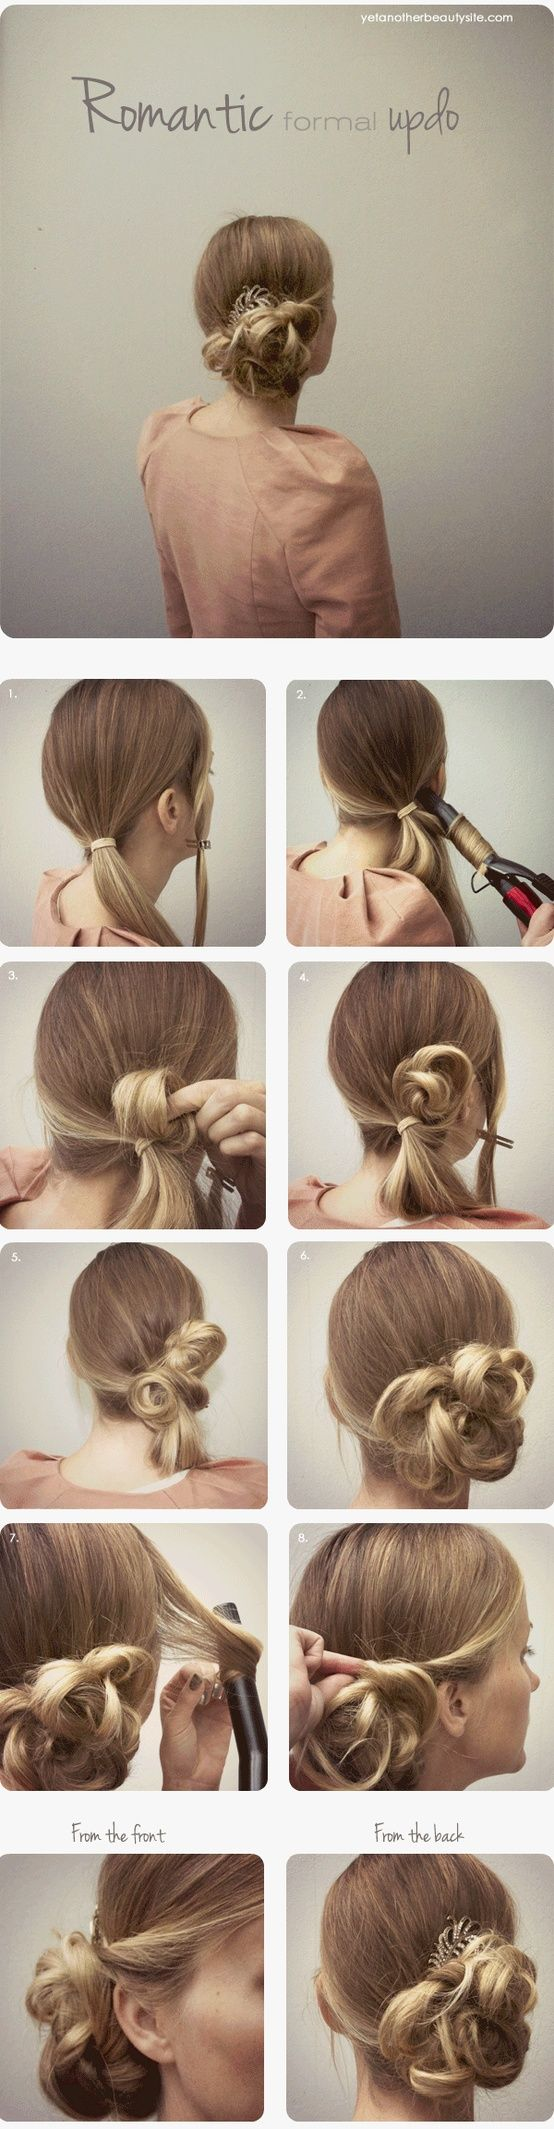 Love how easy this can be in the morning with bed head! Just some bobby pins, a curling iron, and one pony (two if your hair is thick like mine!)